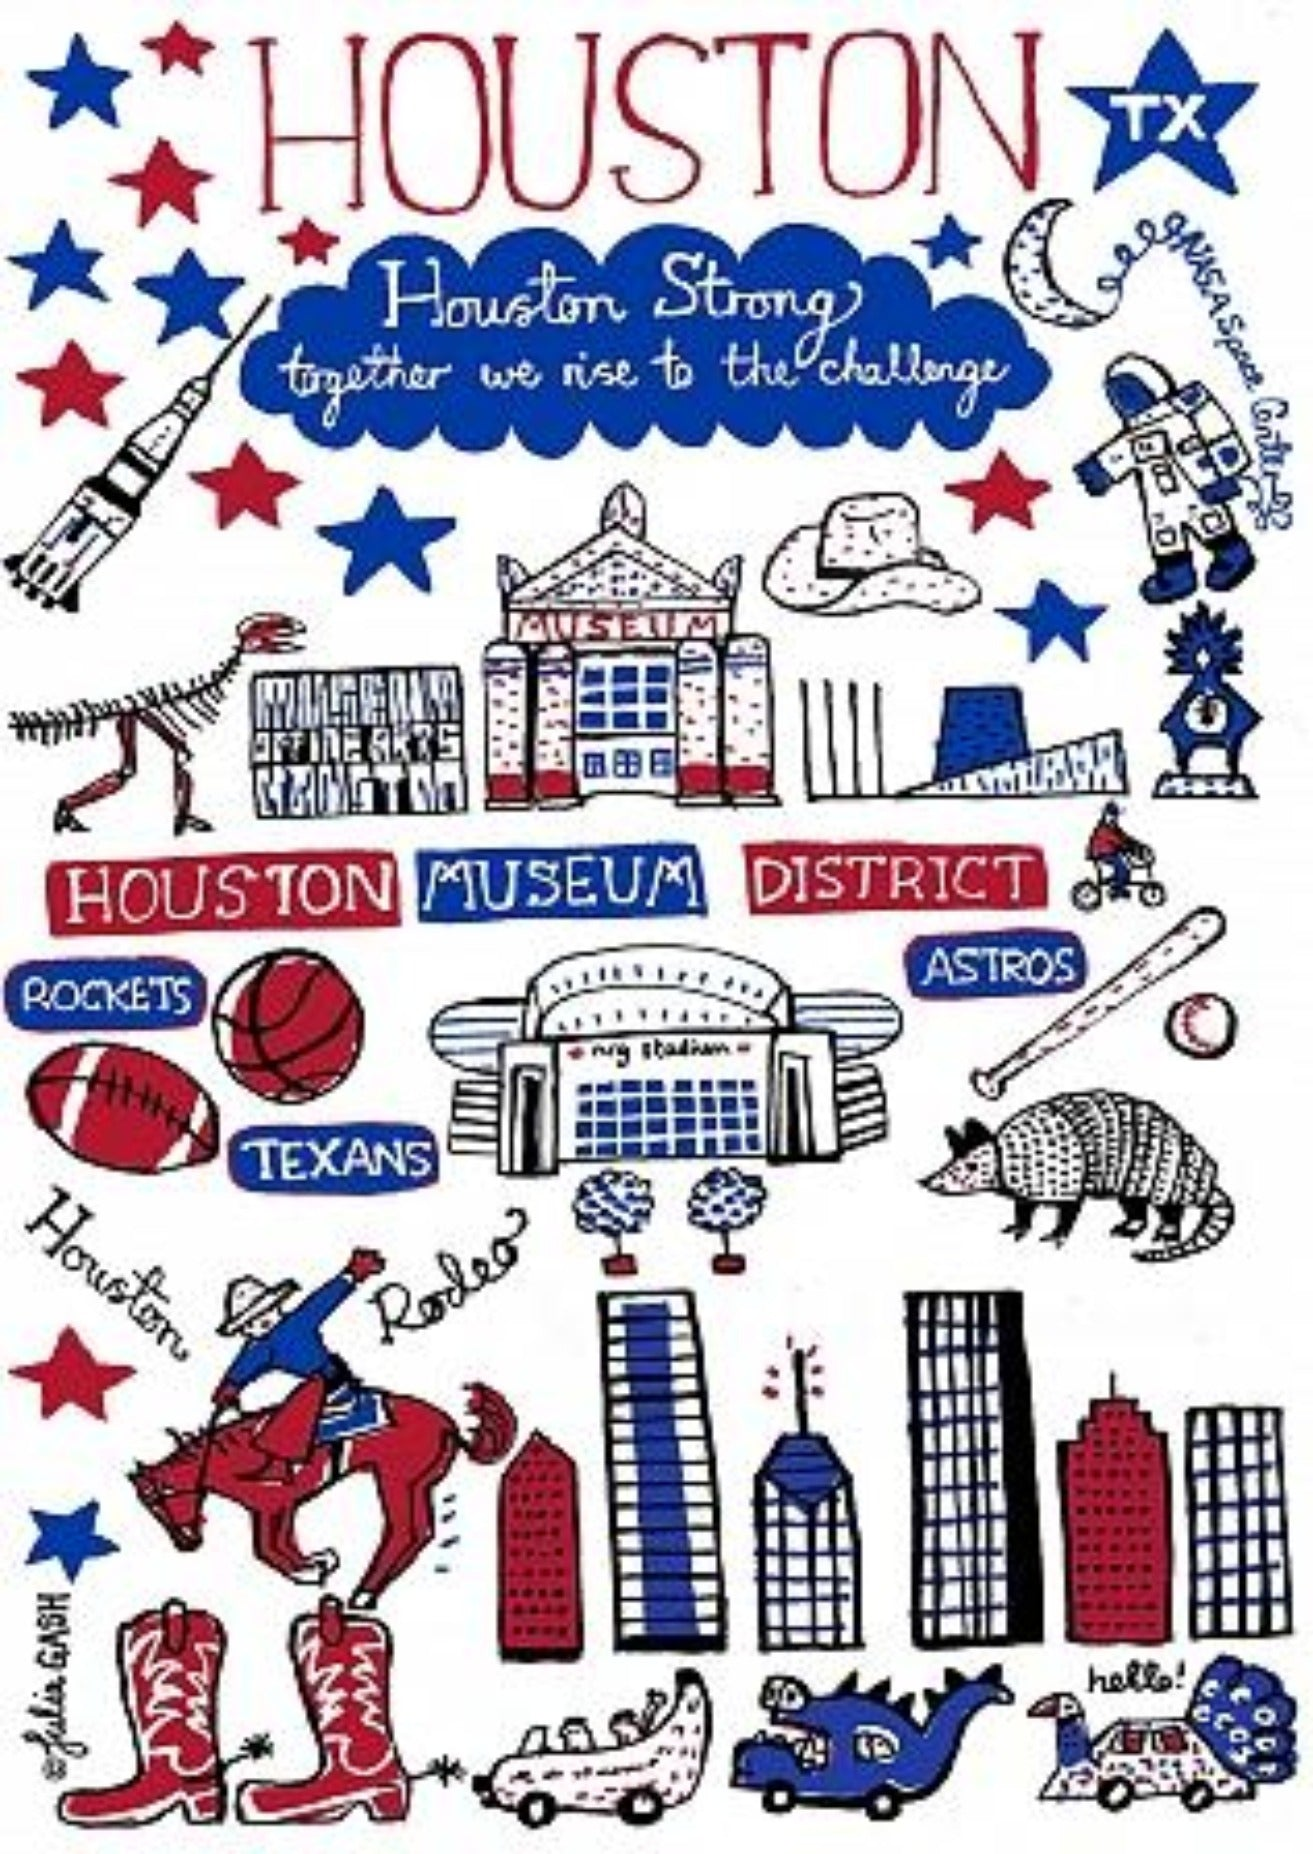 Houston Artwork - Julia Gash